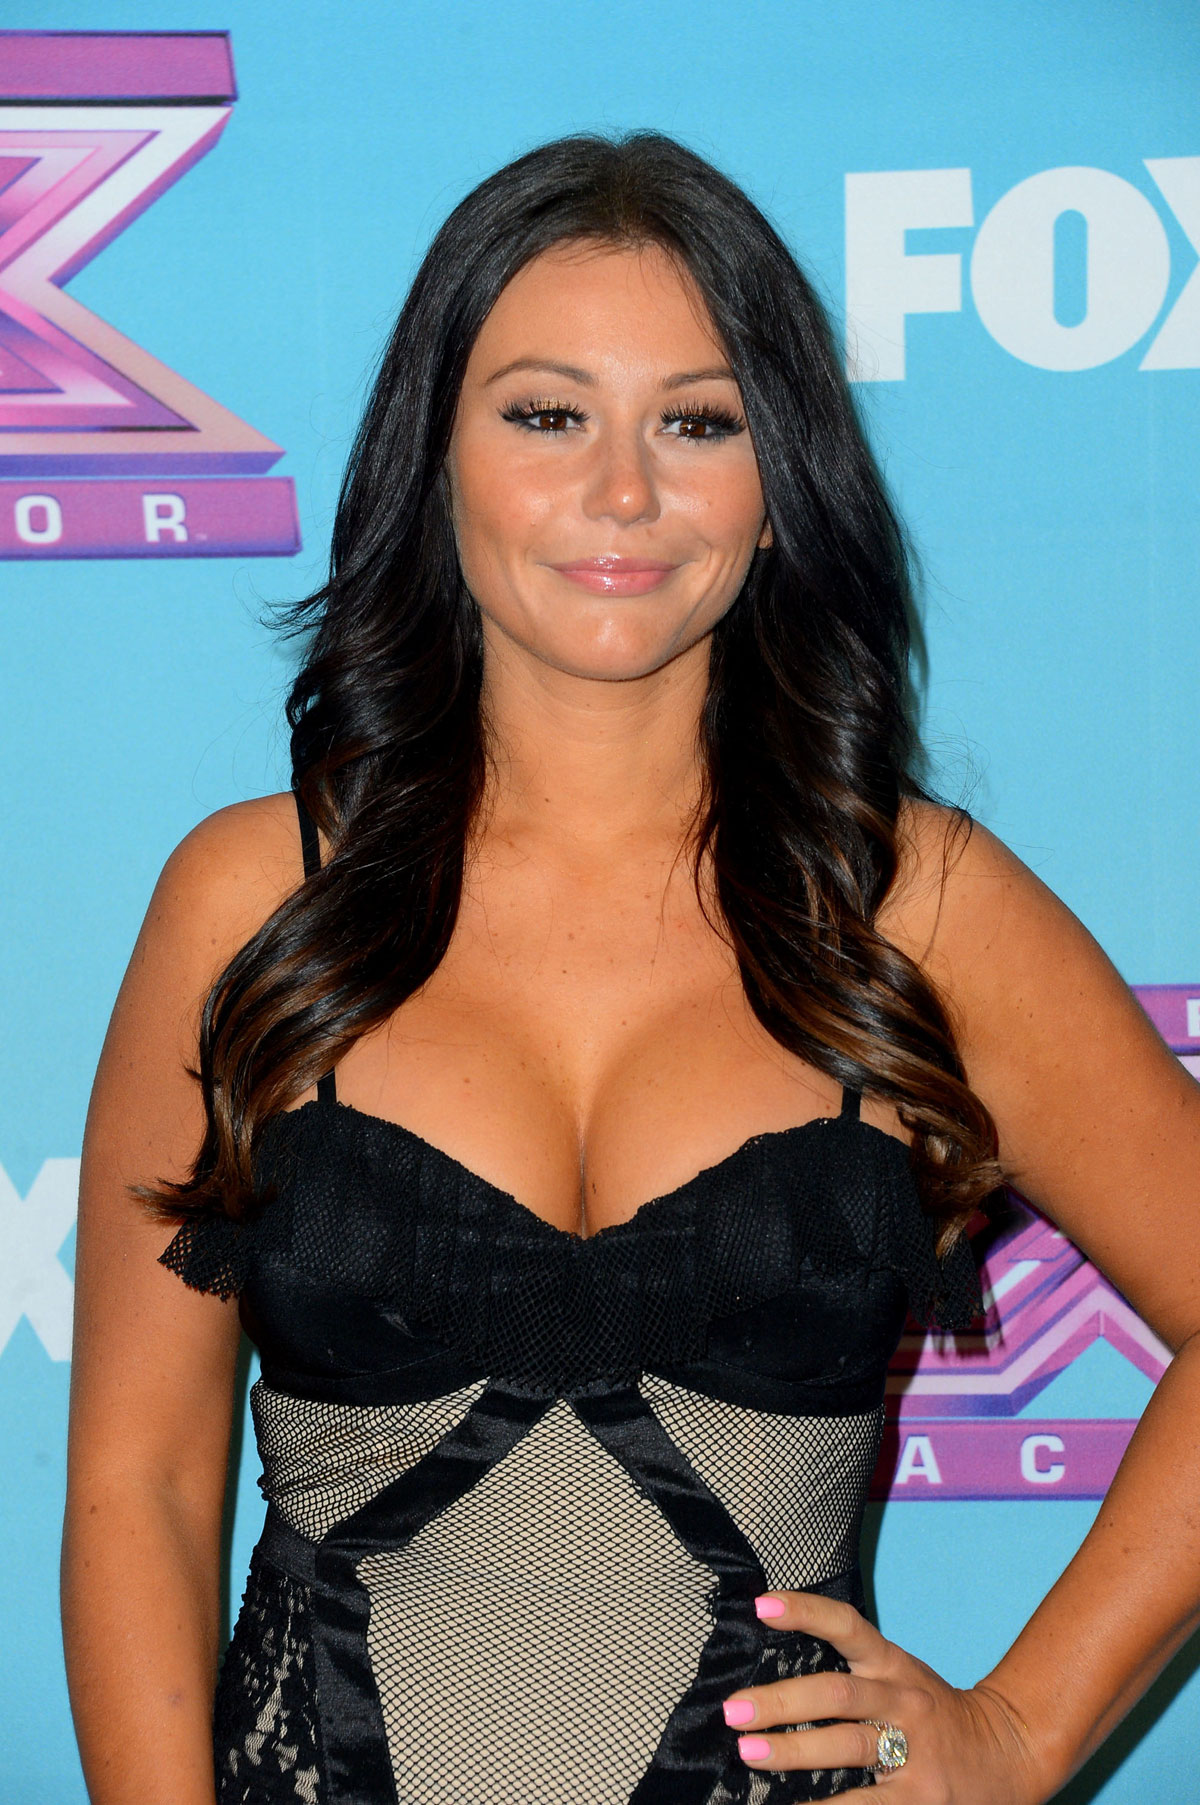 Fotos Jenni Farley JWoww nudes (31 foto and video), Sexy, Leaked, Twitter, cleavage 2018